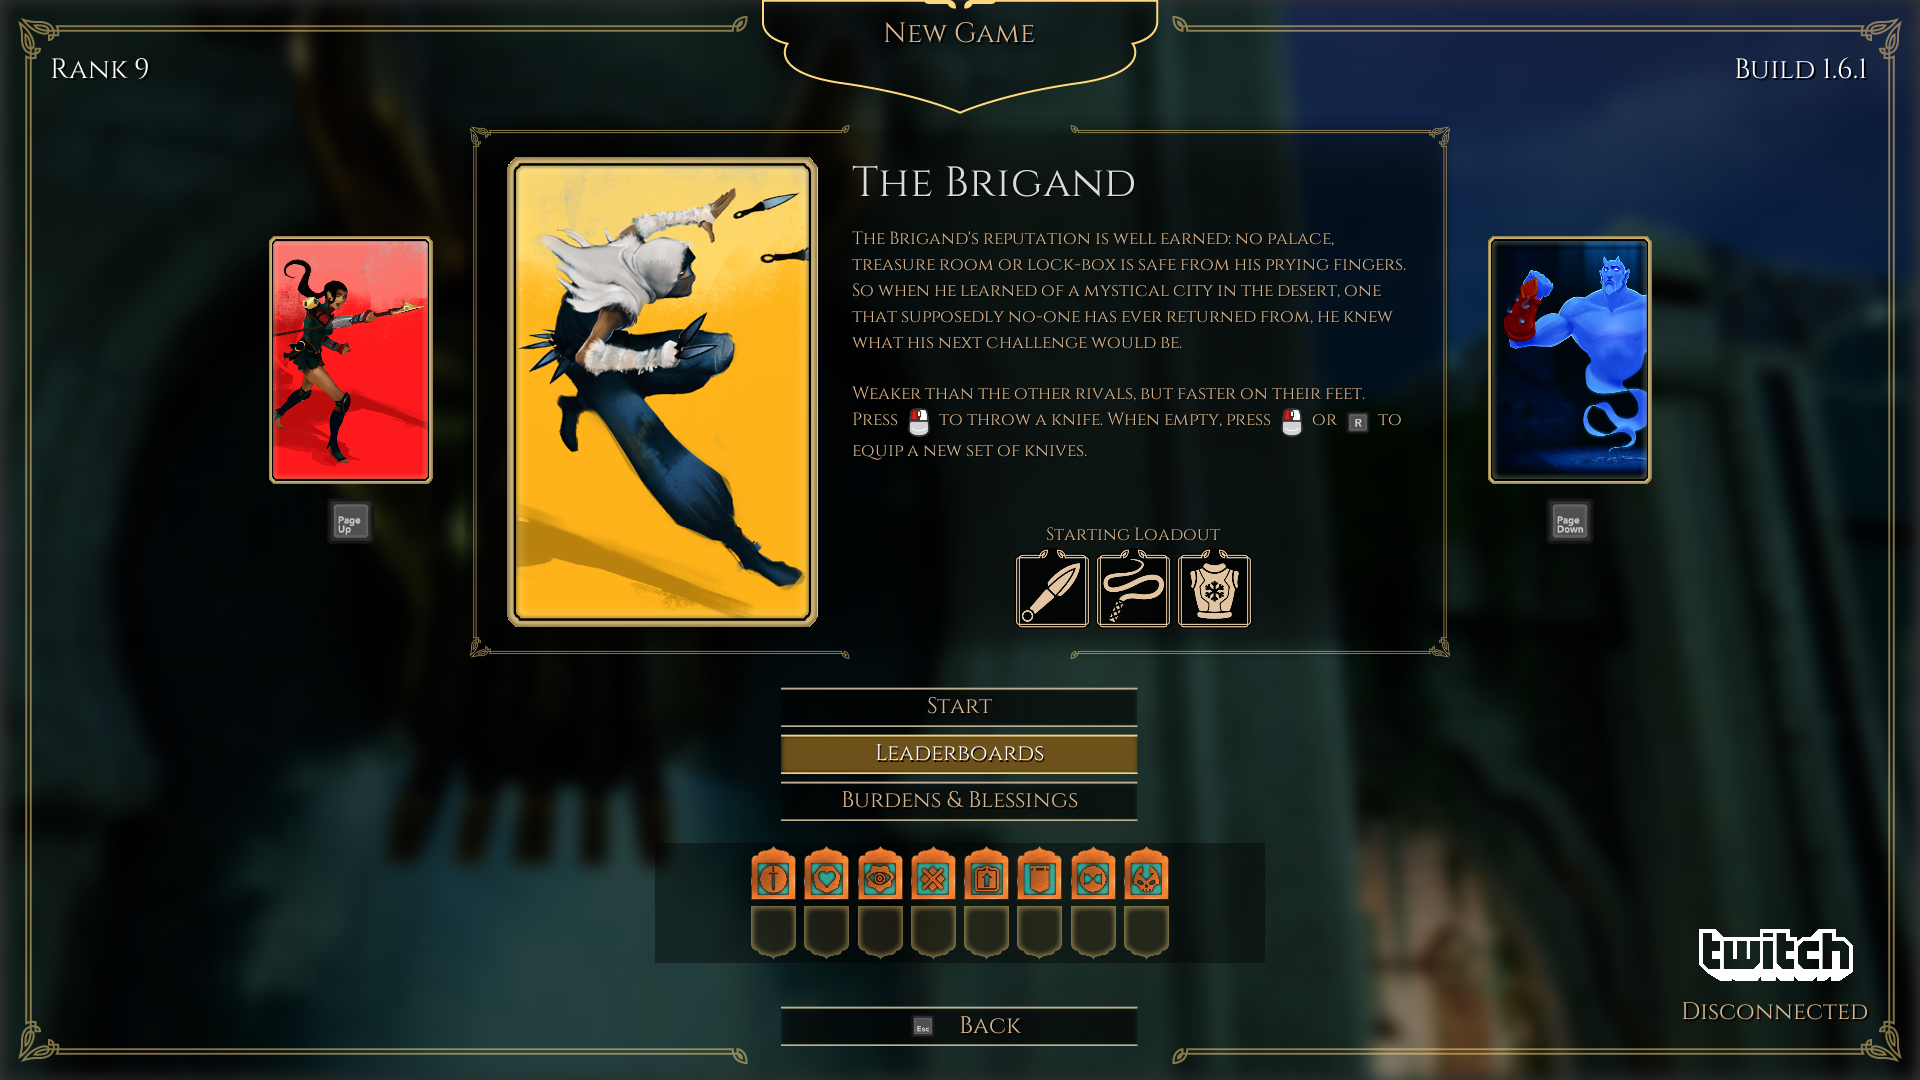 Brigand is my favorite character because of his faster movement speed and throwing knives.